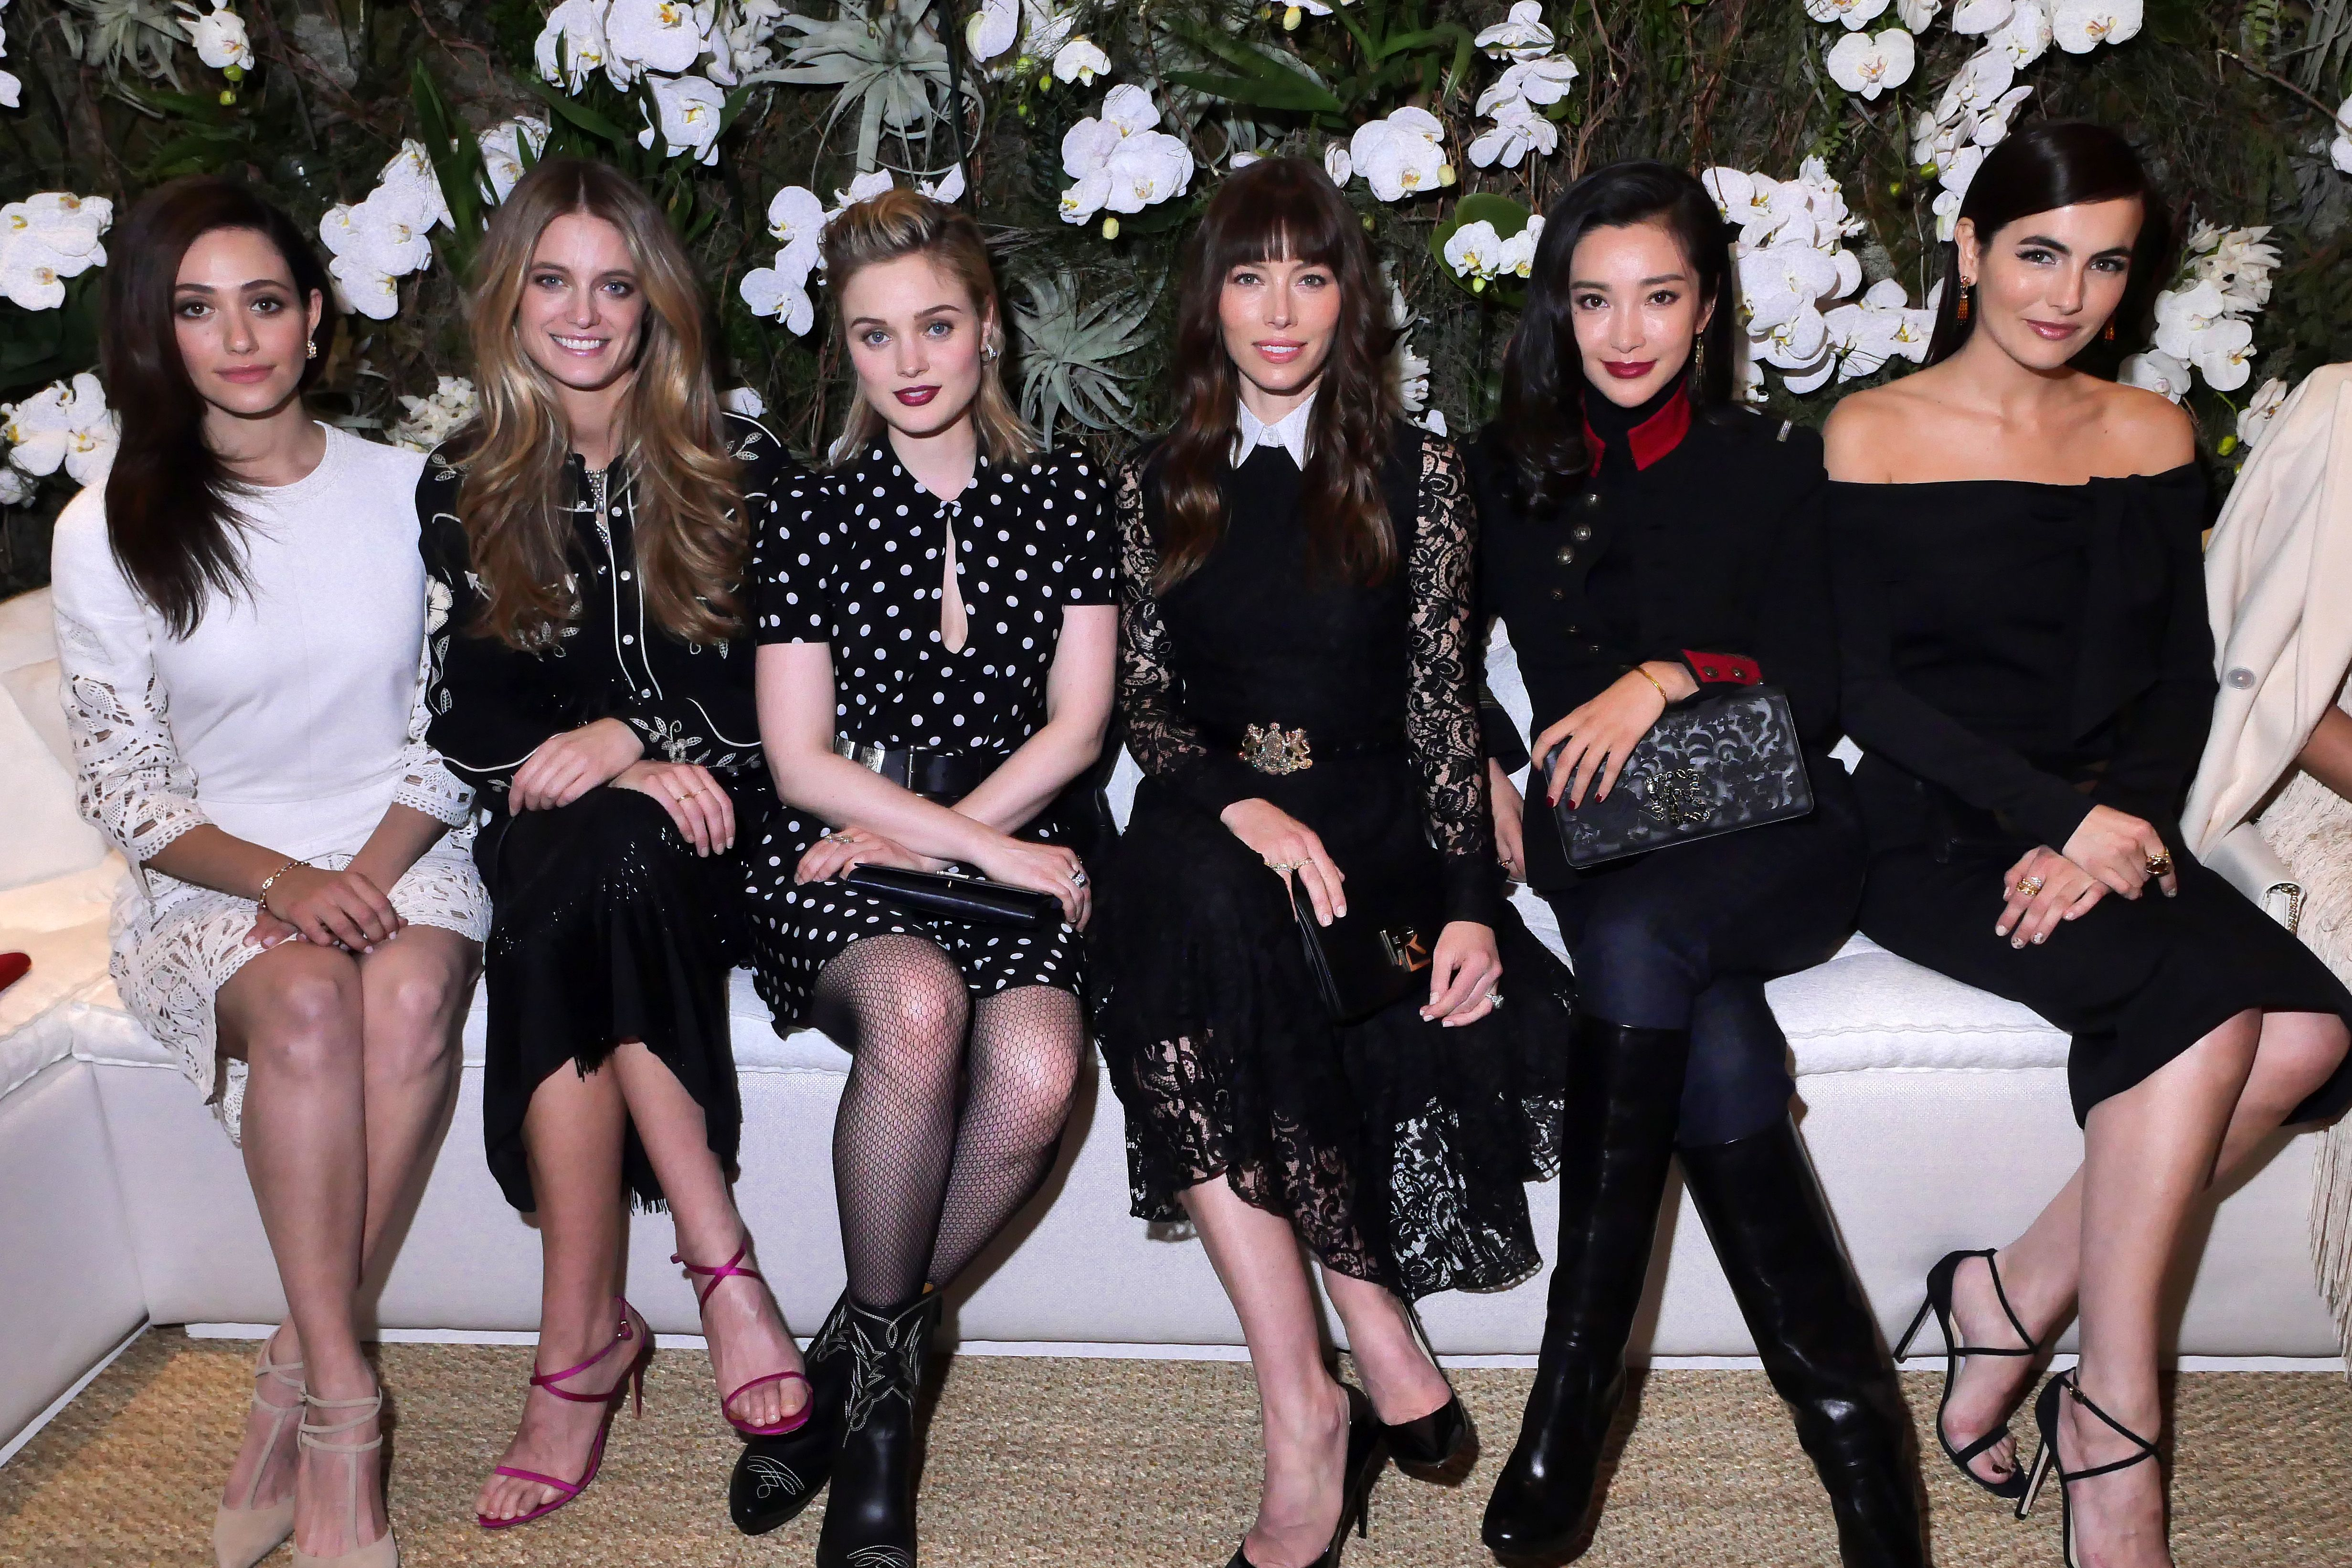 Emmy Rossum, Bella Heathcote, Jessica Biel and Camilla Belle in the front row